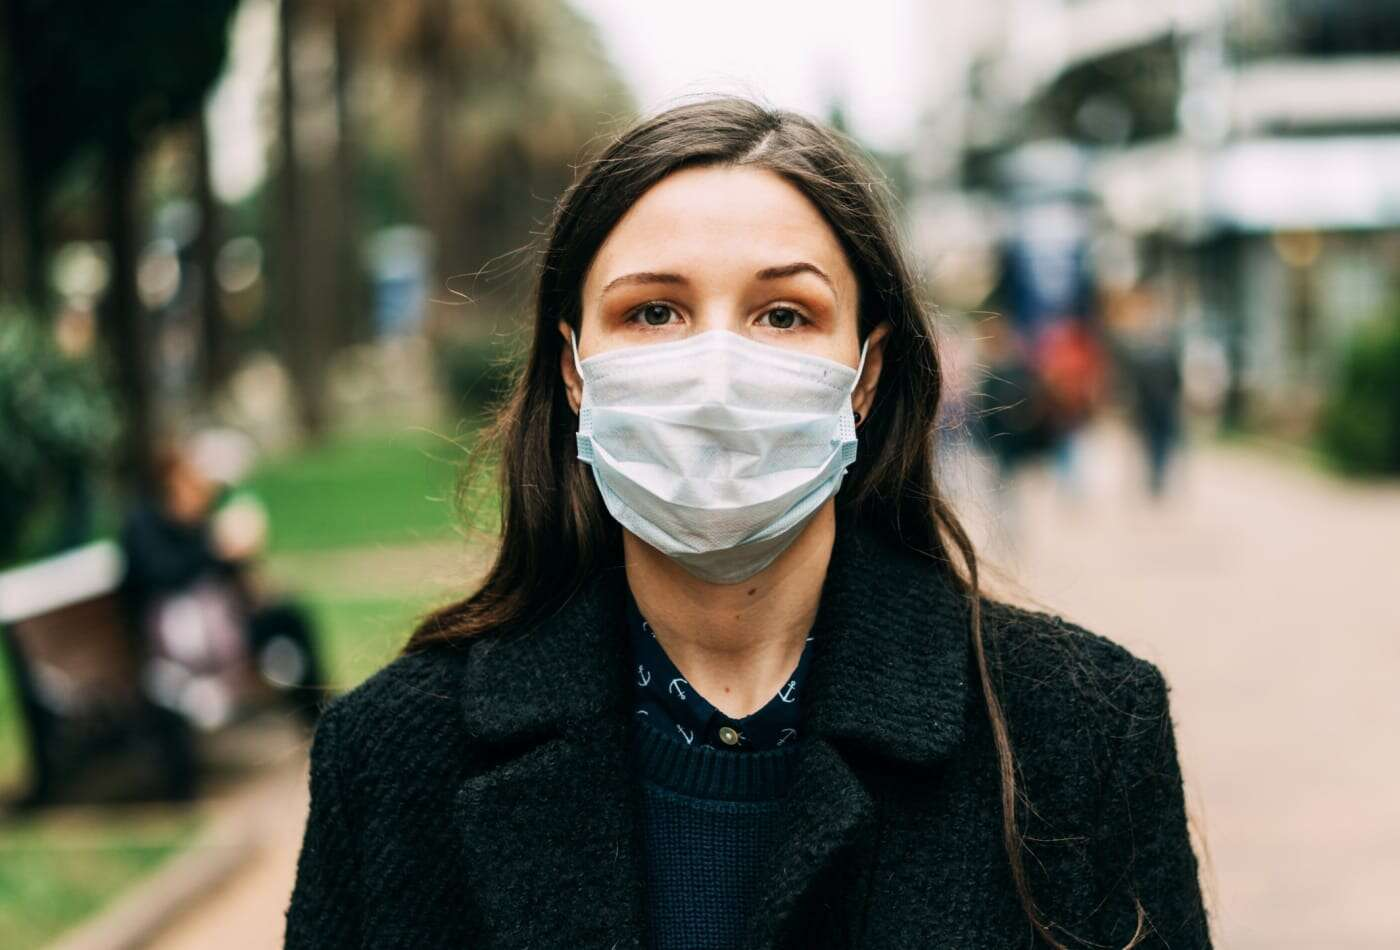 106467352-1585602933667virus-medical-flu-mask-health-protection-woman-young-outdoor-sick-pollution-protective-danger-face_t20_o07dbe